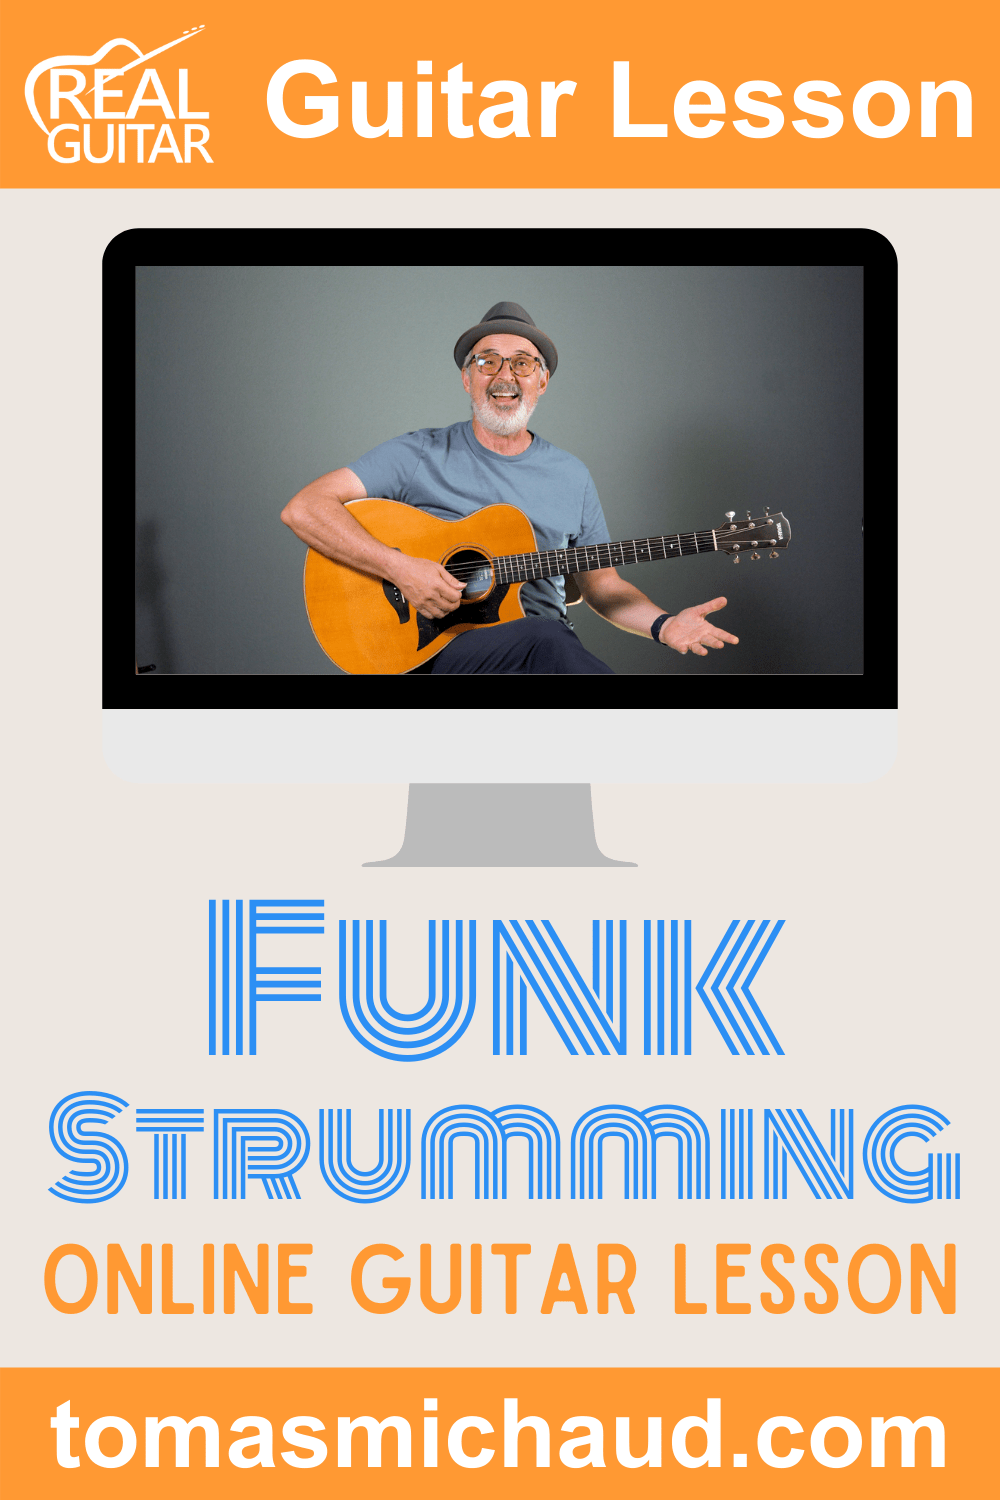 Funk Strumming Online Guitar Lesson